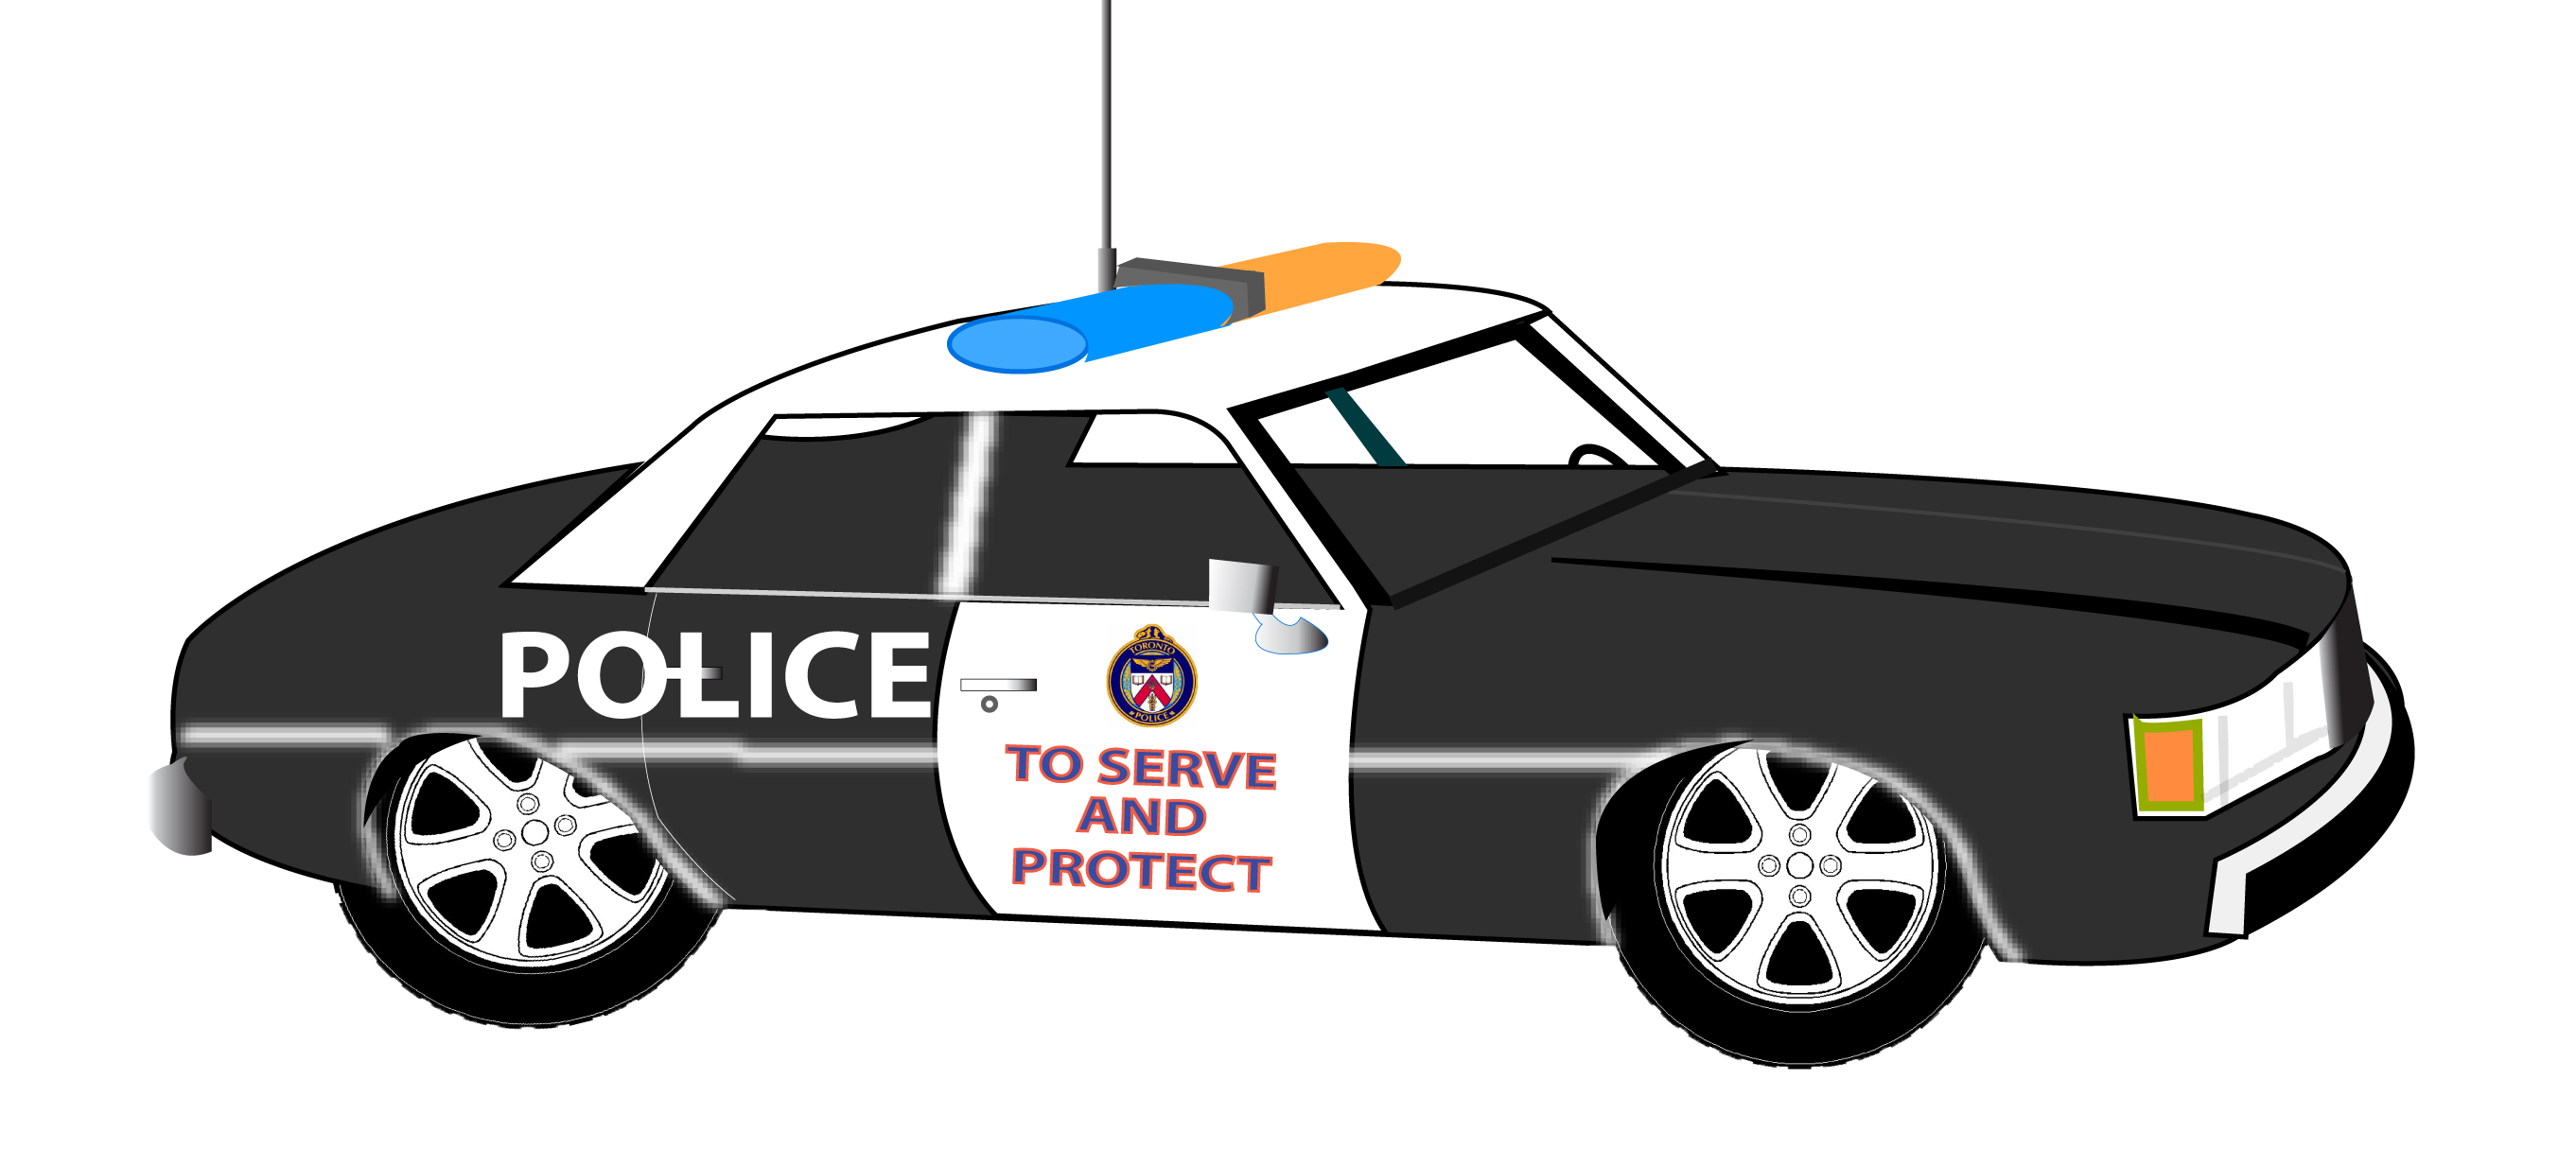 Car chase clipart graphic royalty free library Police car clipart images - ClipartFest graphic royalty free library